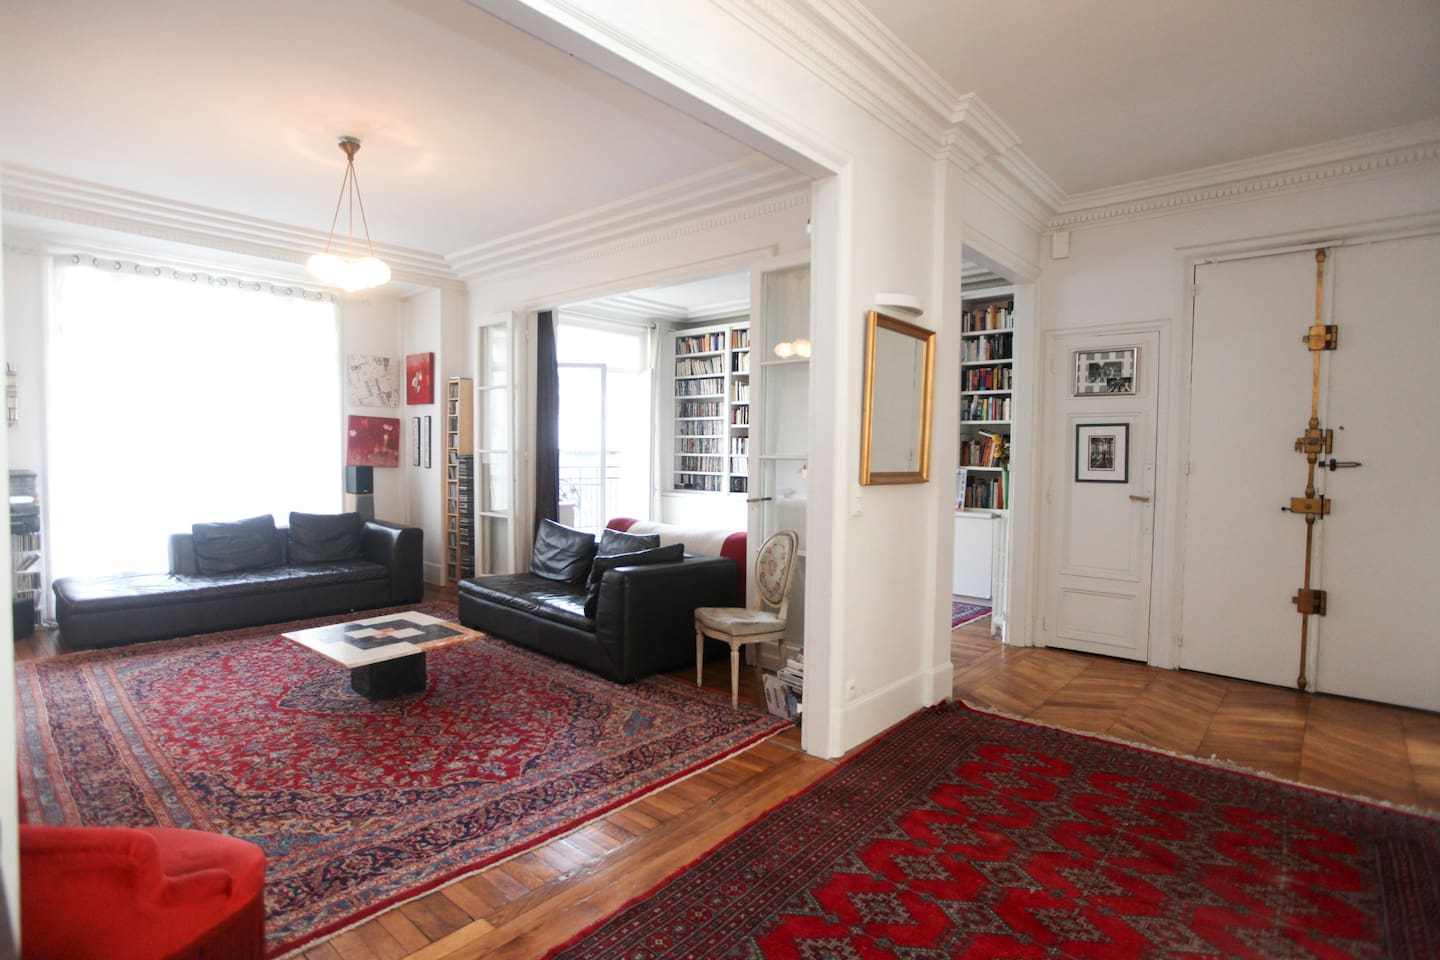 living room, entrance hall, library